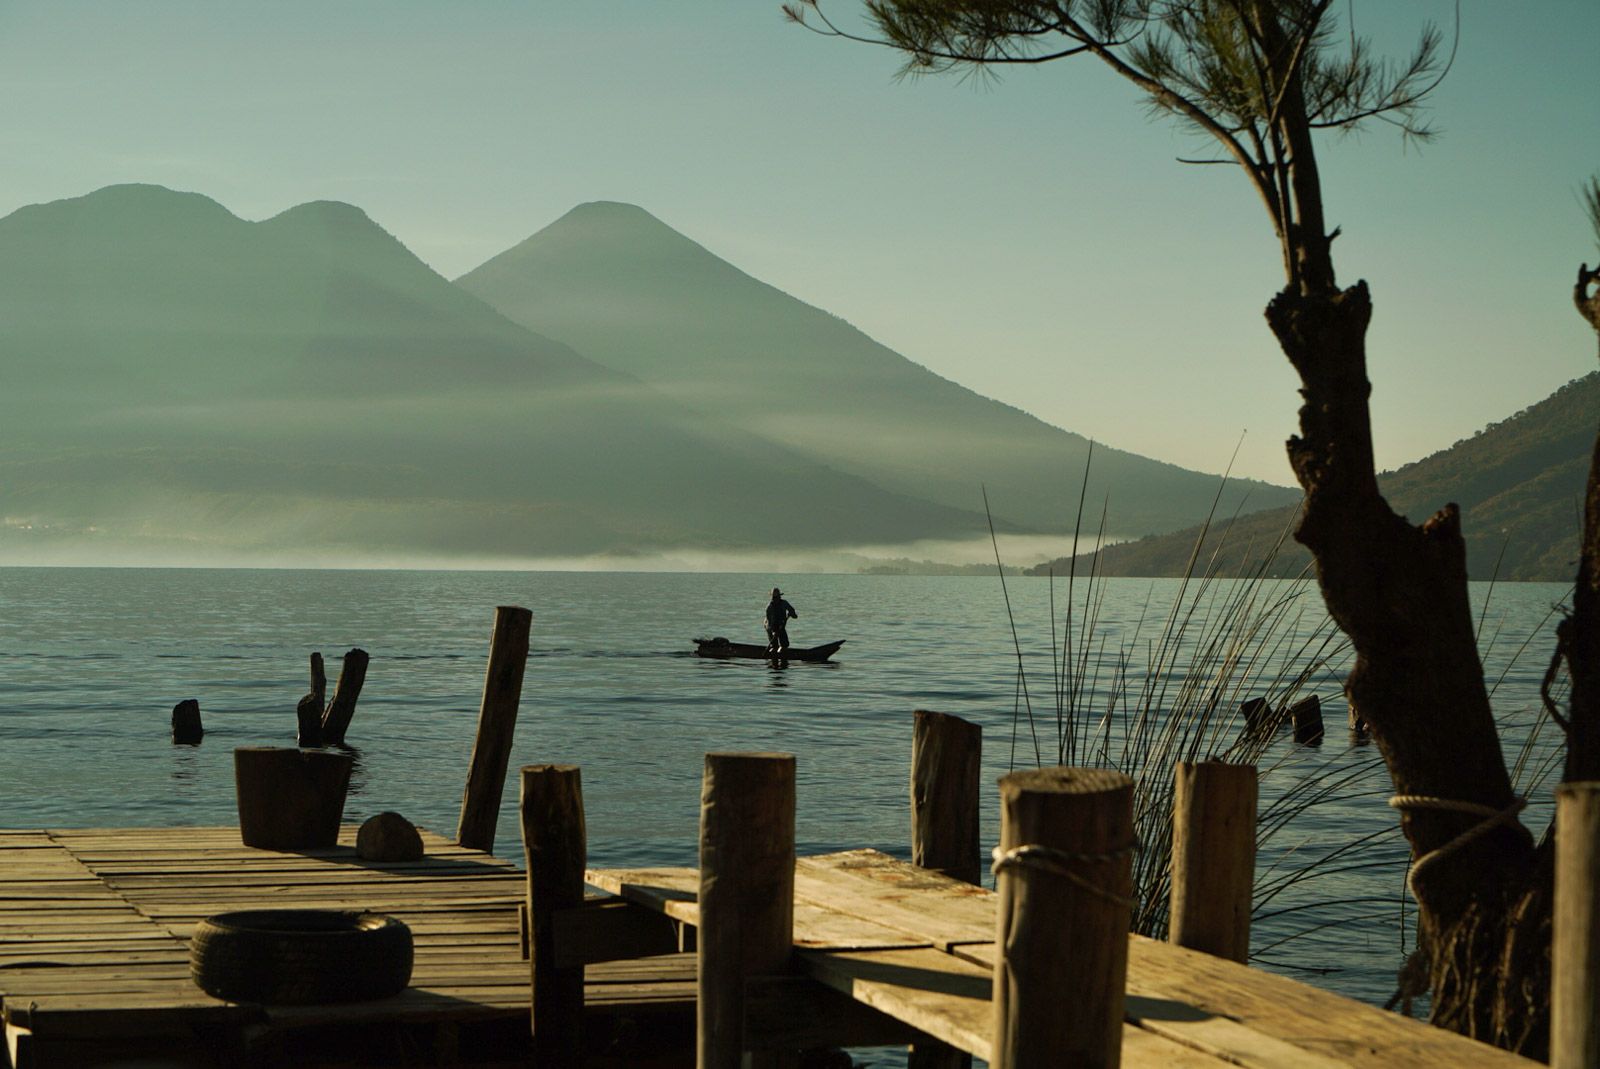 3-Guate-Lake-Atitlan-Fisherman-Volcanoes